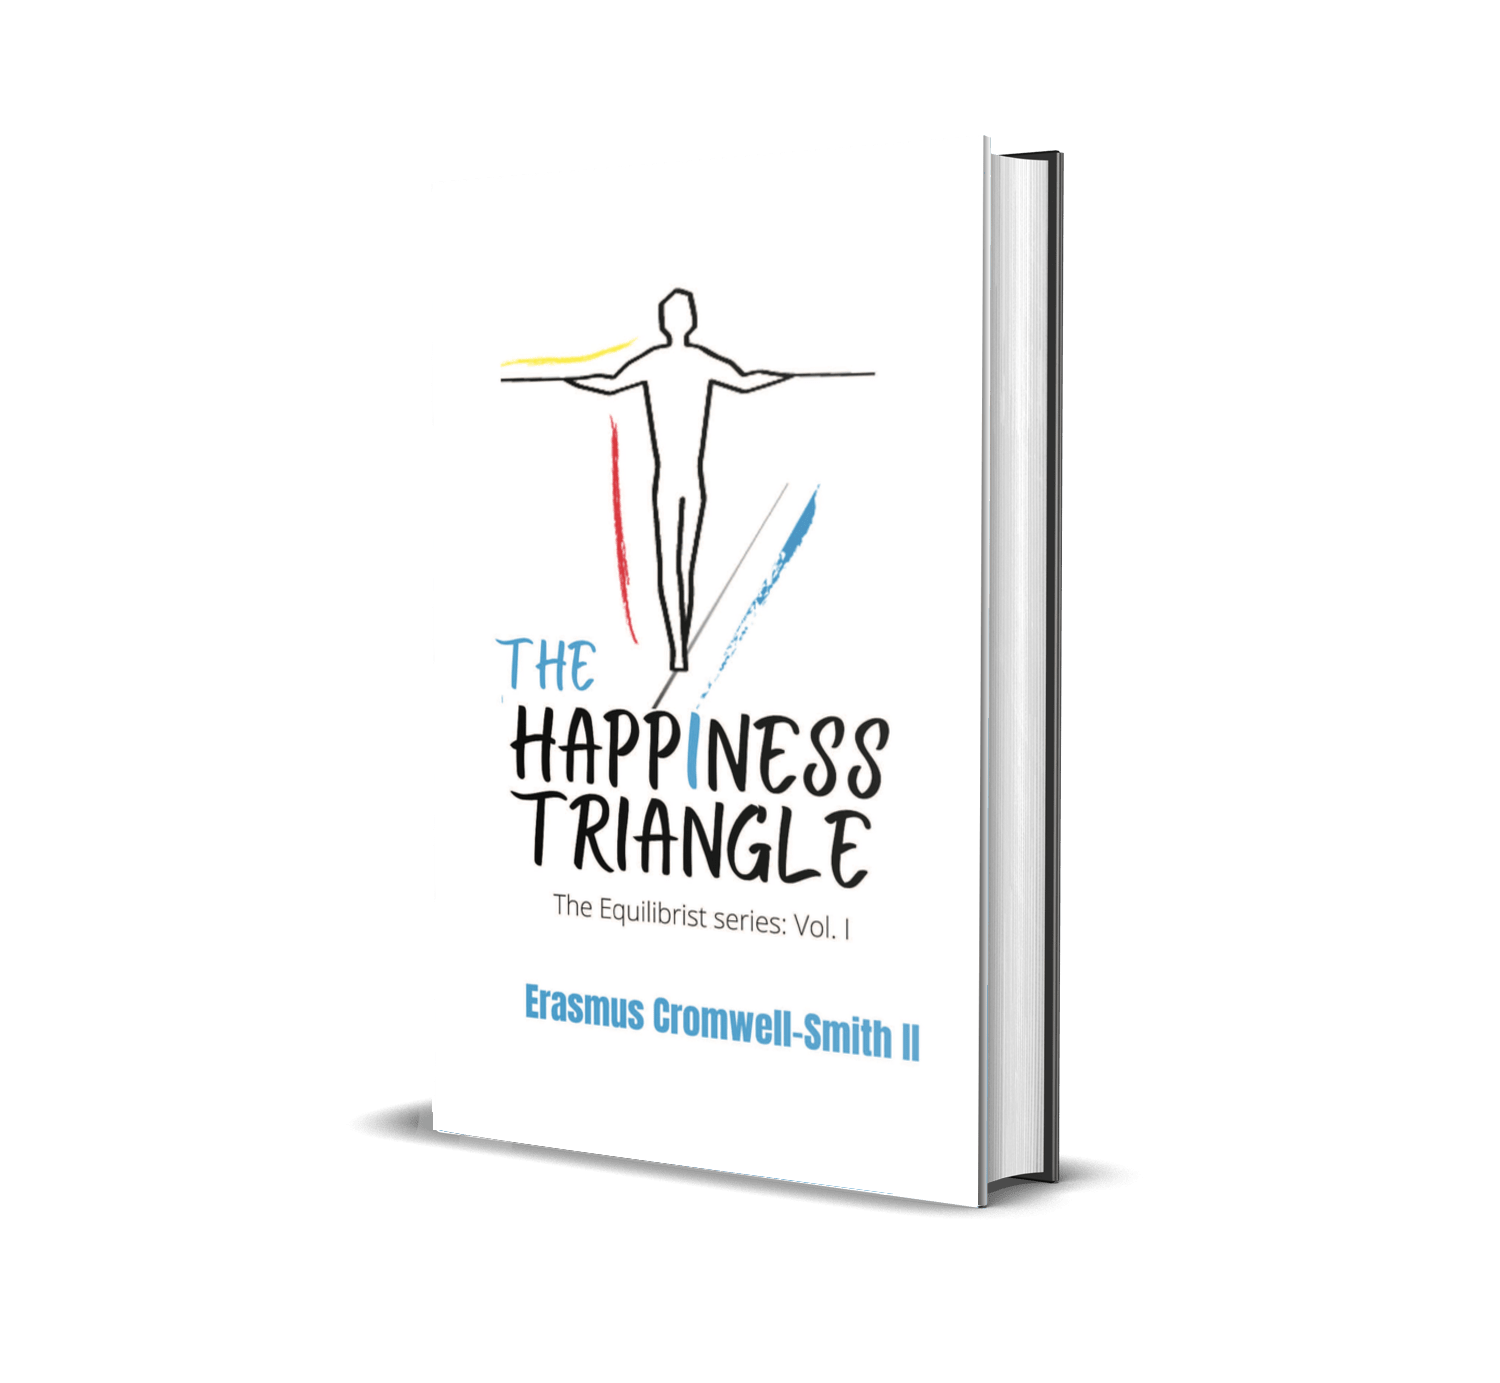 The Happiness Triangle